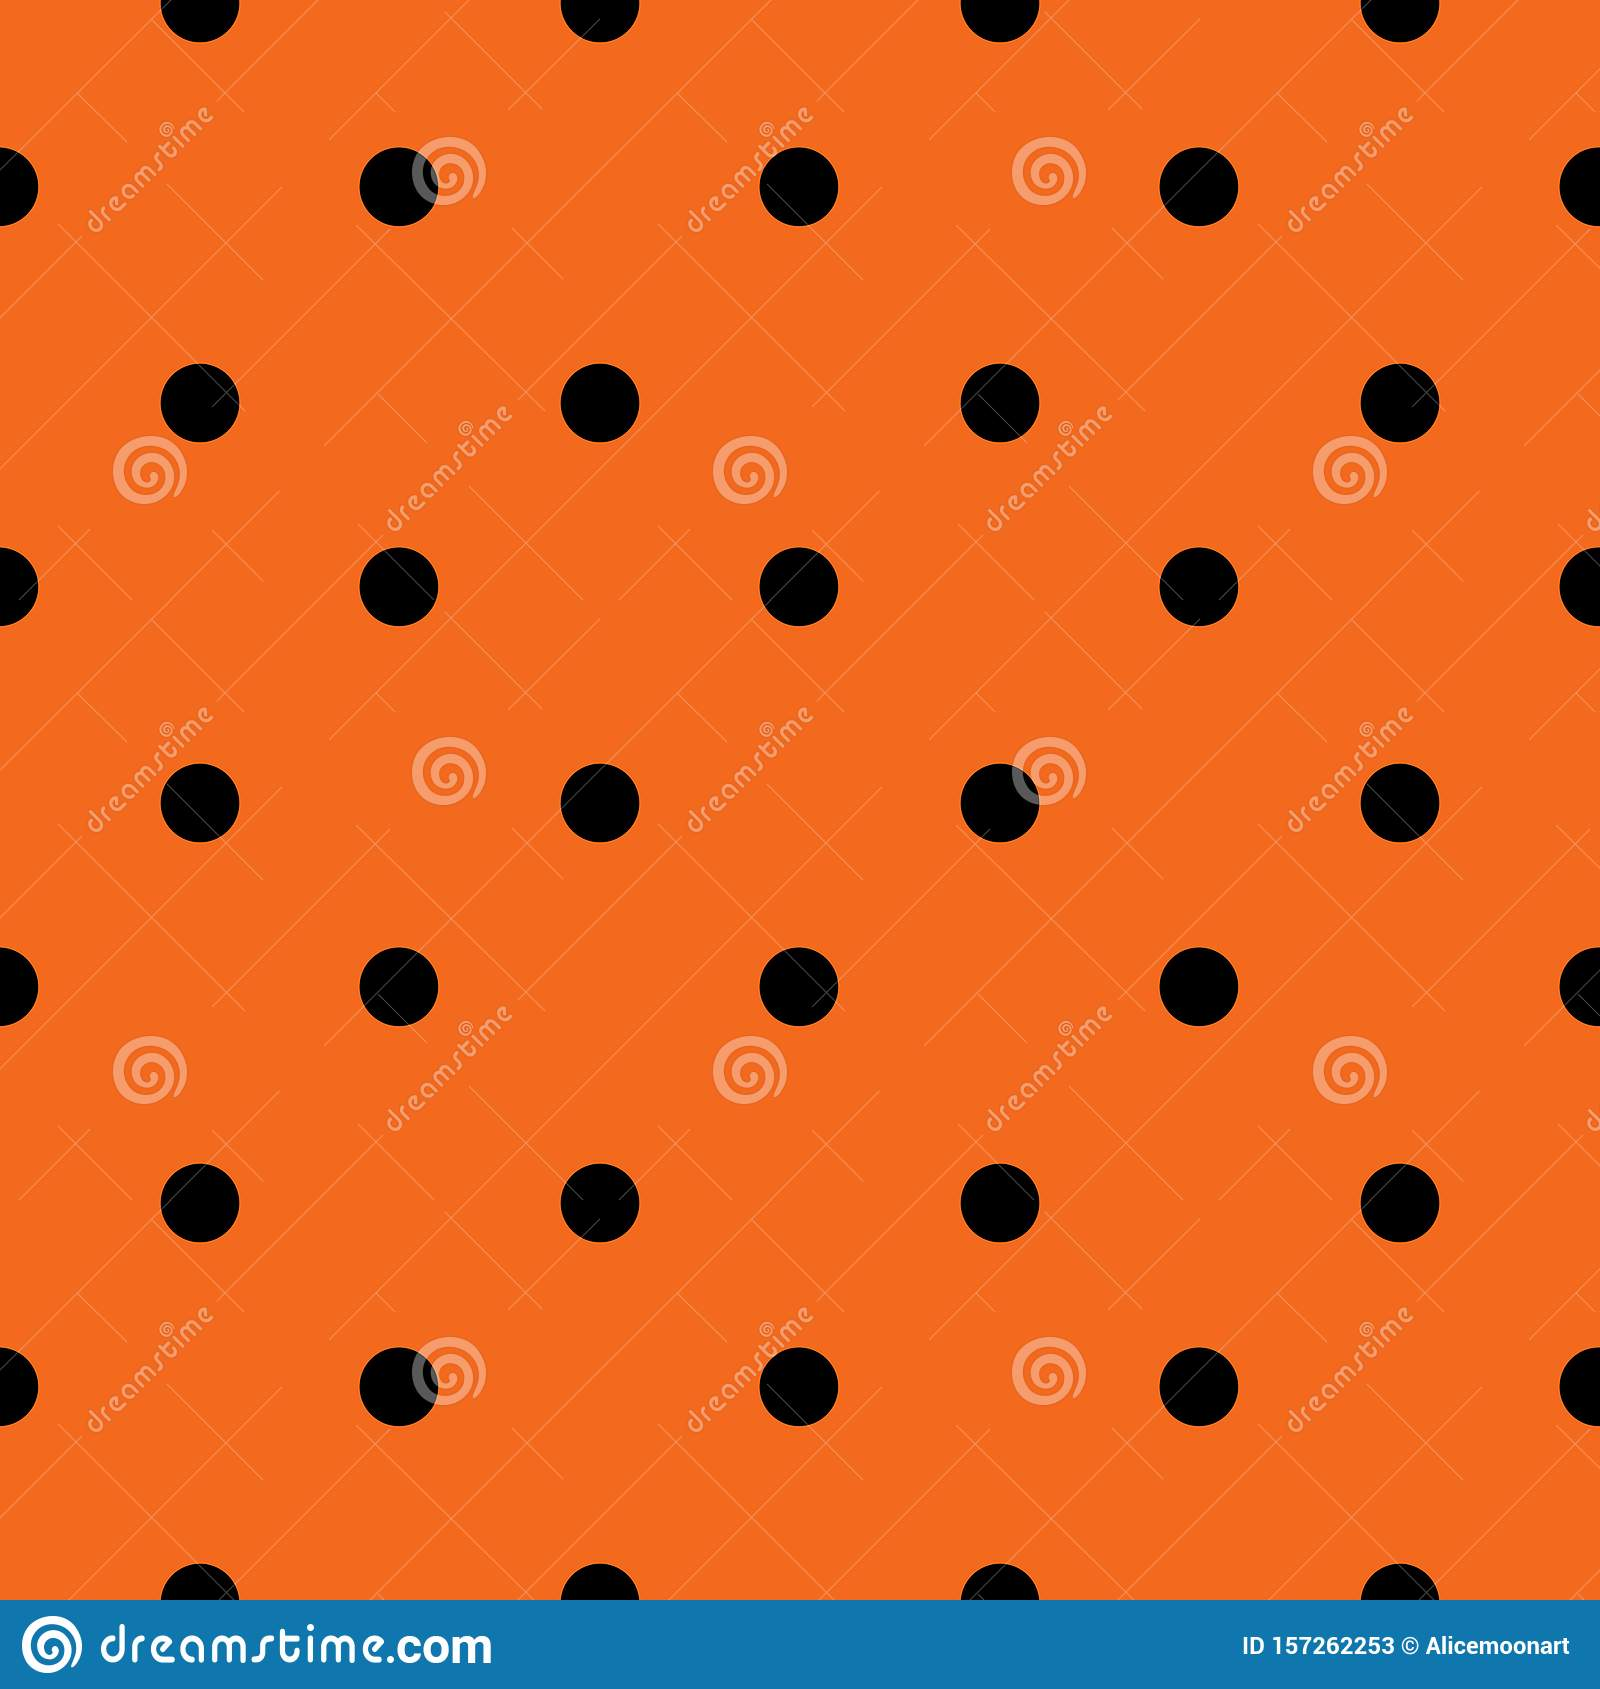 Halloween Seamless Polka Dot Pattern In Orange And Black Color